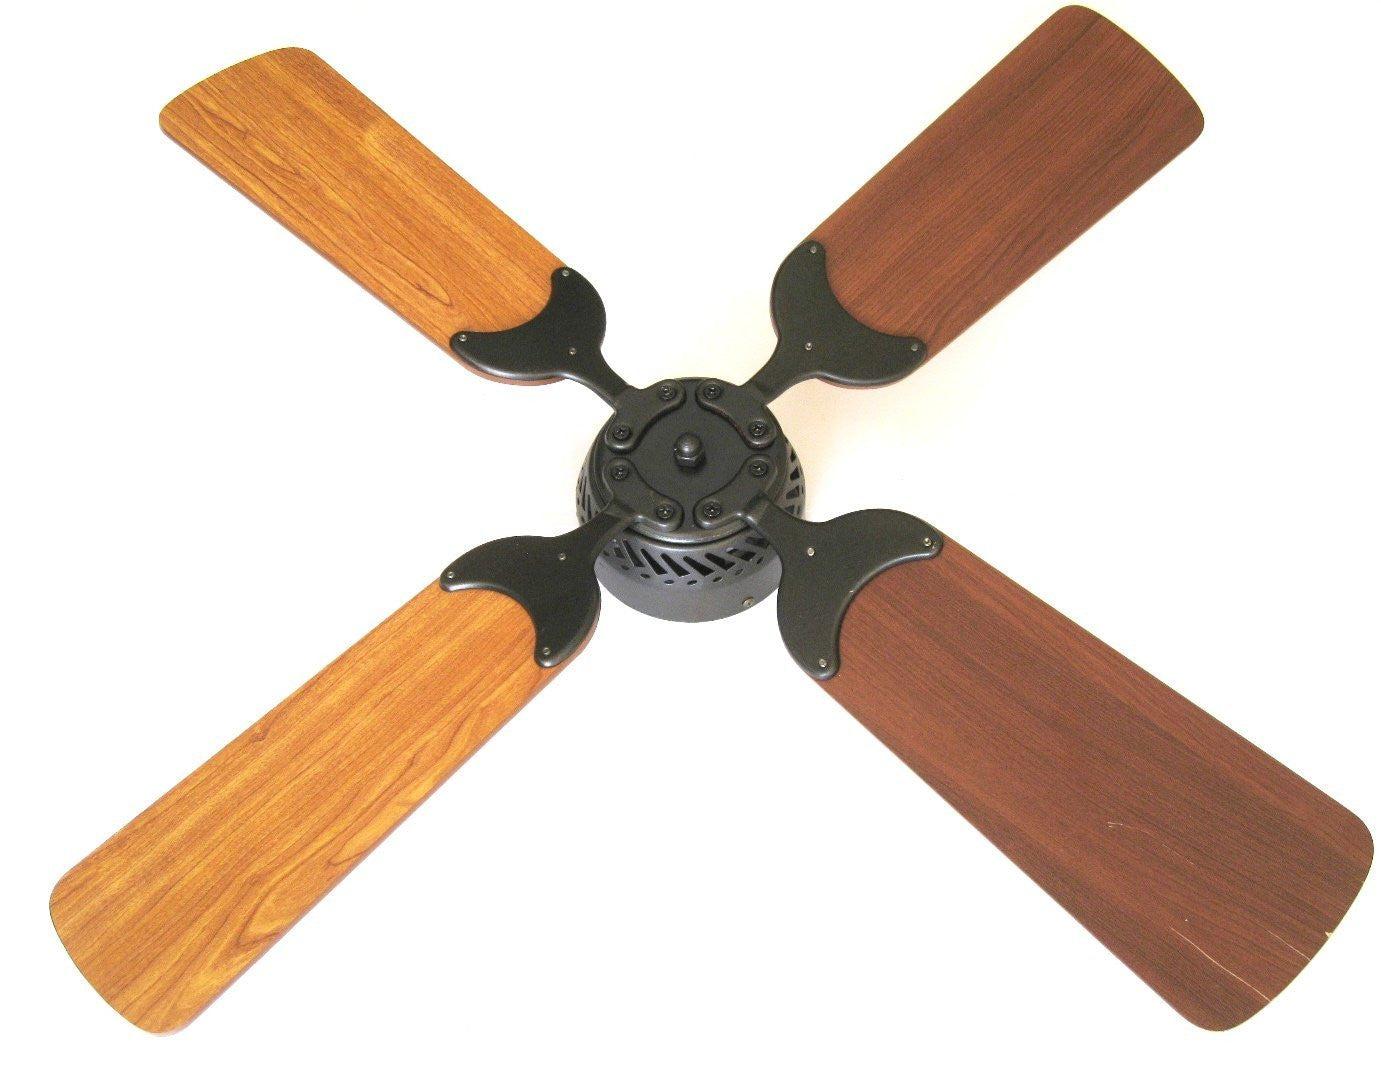 Global Electric 42-inch Non-Brush DC12V Ceiling Fan, Oil Rubbed Bronze Finish with Remote Control, Light Cherry/Cherry Reversible Blades  The Cabin Depot- The Cabin Depot Off-Grid Off Grid Living Solutions Cabin Cottage Camp Solar Panel Water Heater Hunting Fishing Boats RVs Outdoors